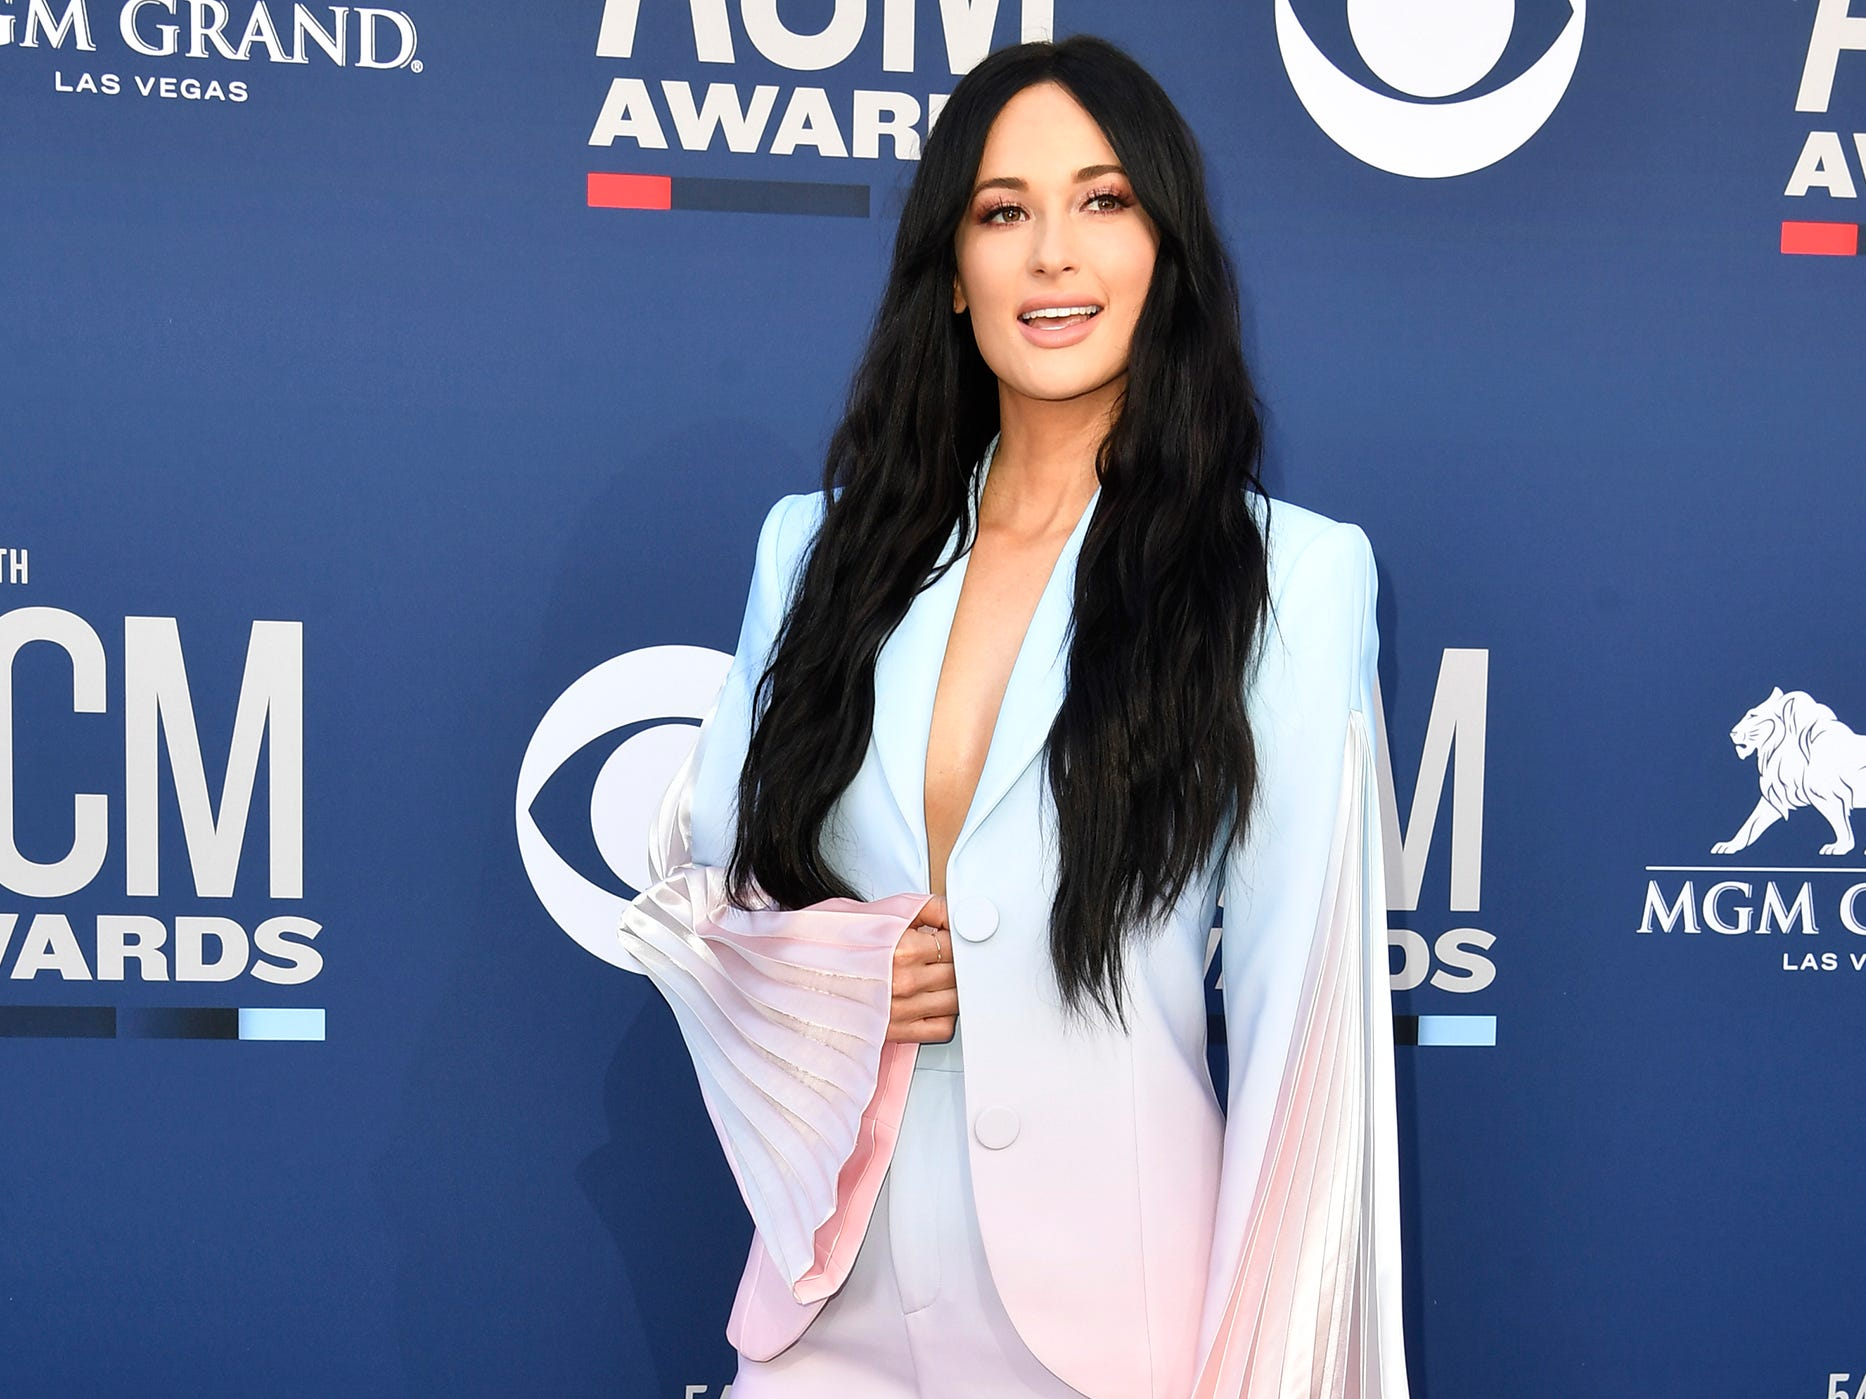 Kacey Musgraves walks the red carpet at the 54TH Academy of Country Music Awards Sunday, April 7, 2019, in Las Vegas, Nev.